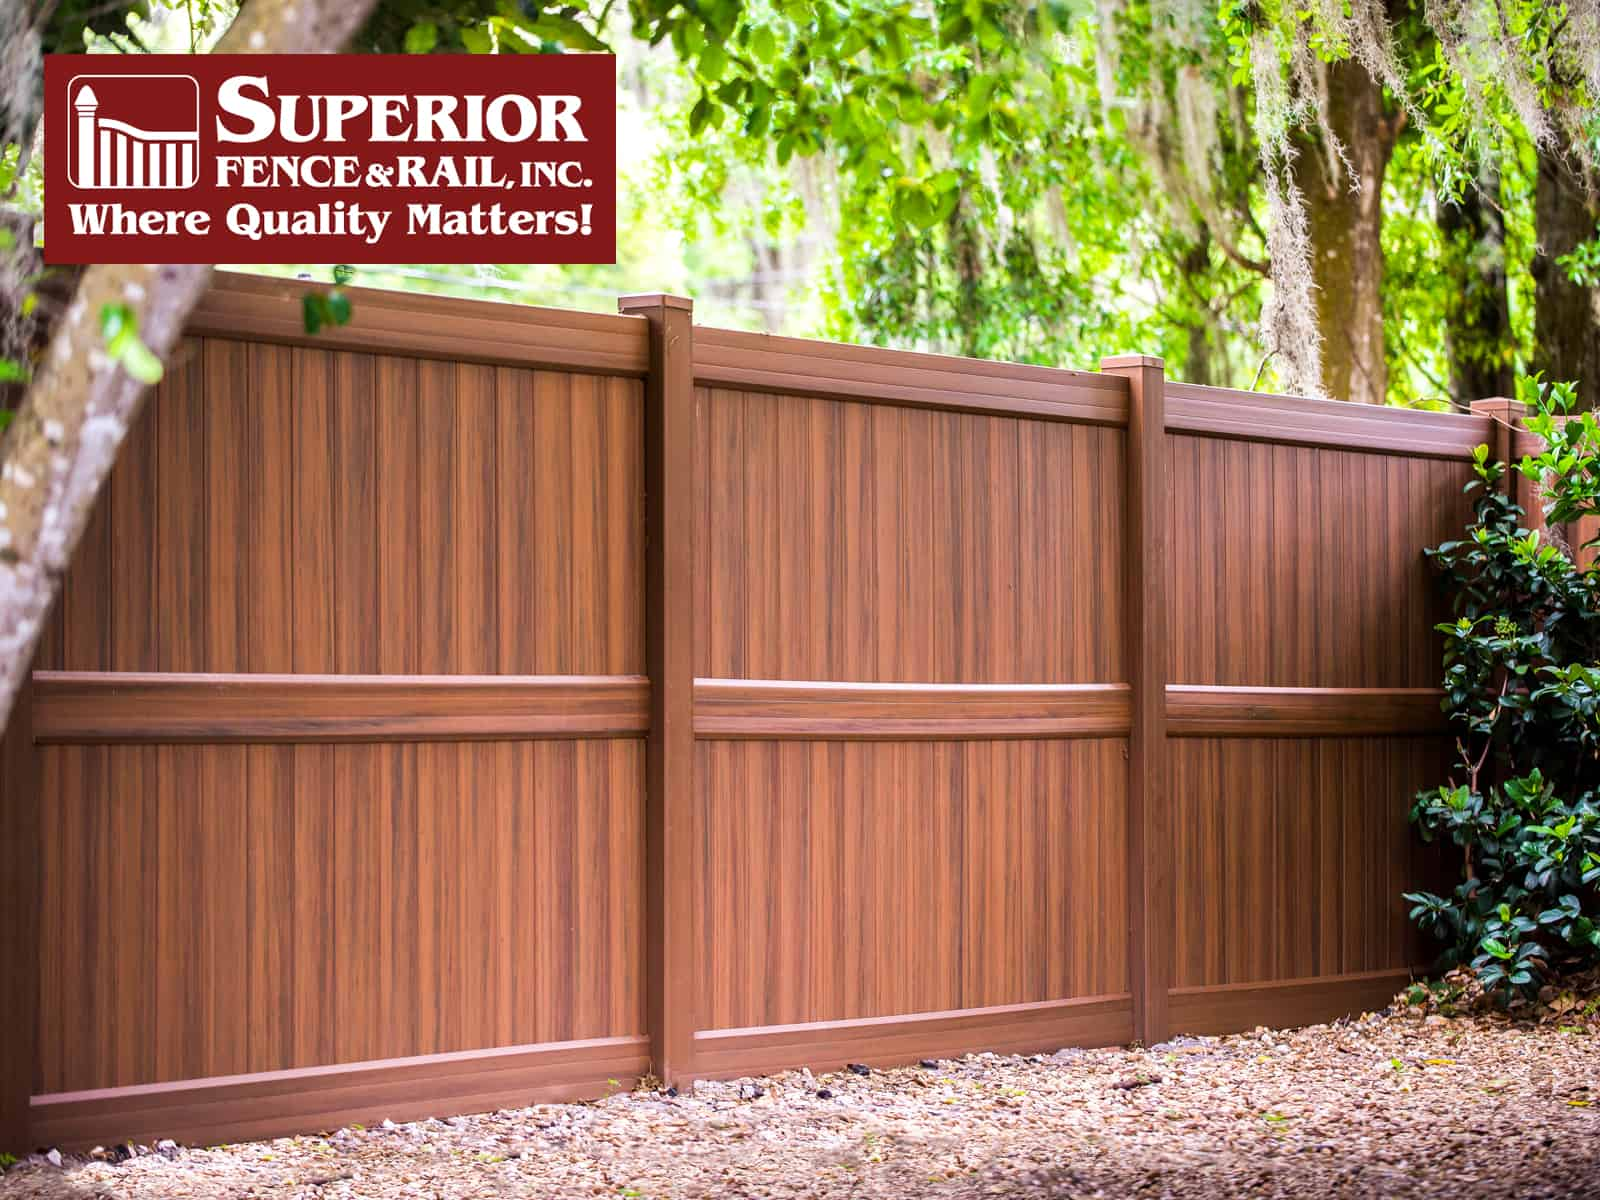 Live Oak Fence Company Contractor